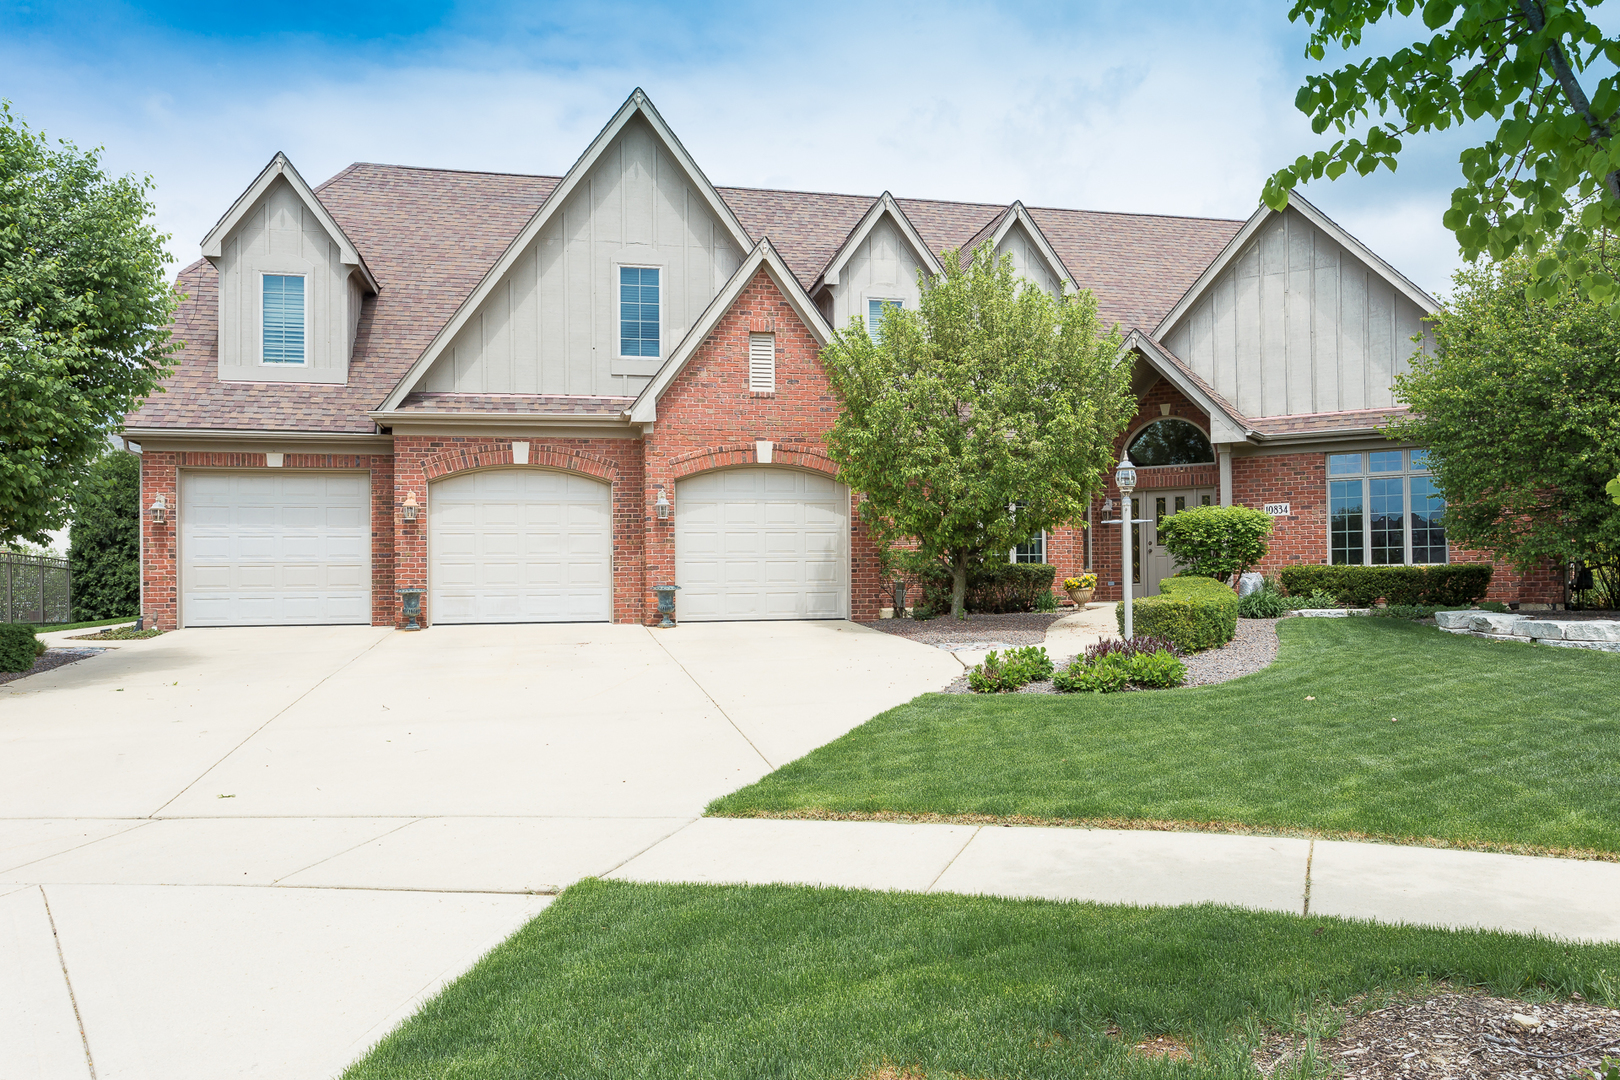 Property for sale at 10834 Moose Lane, Orland Park,  Il 60467